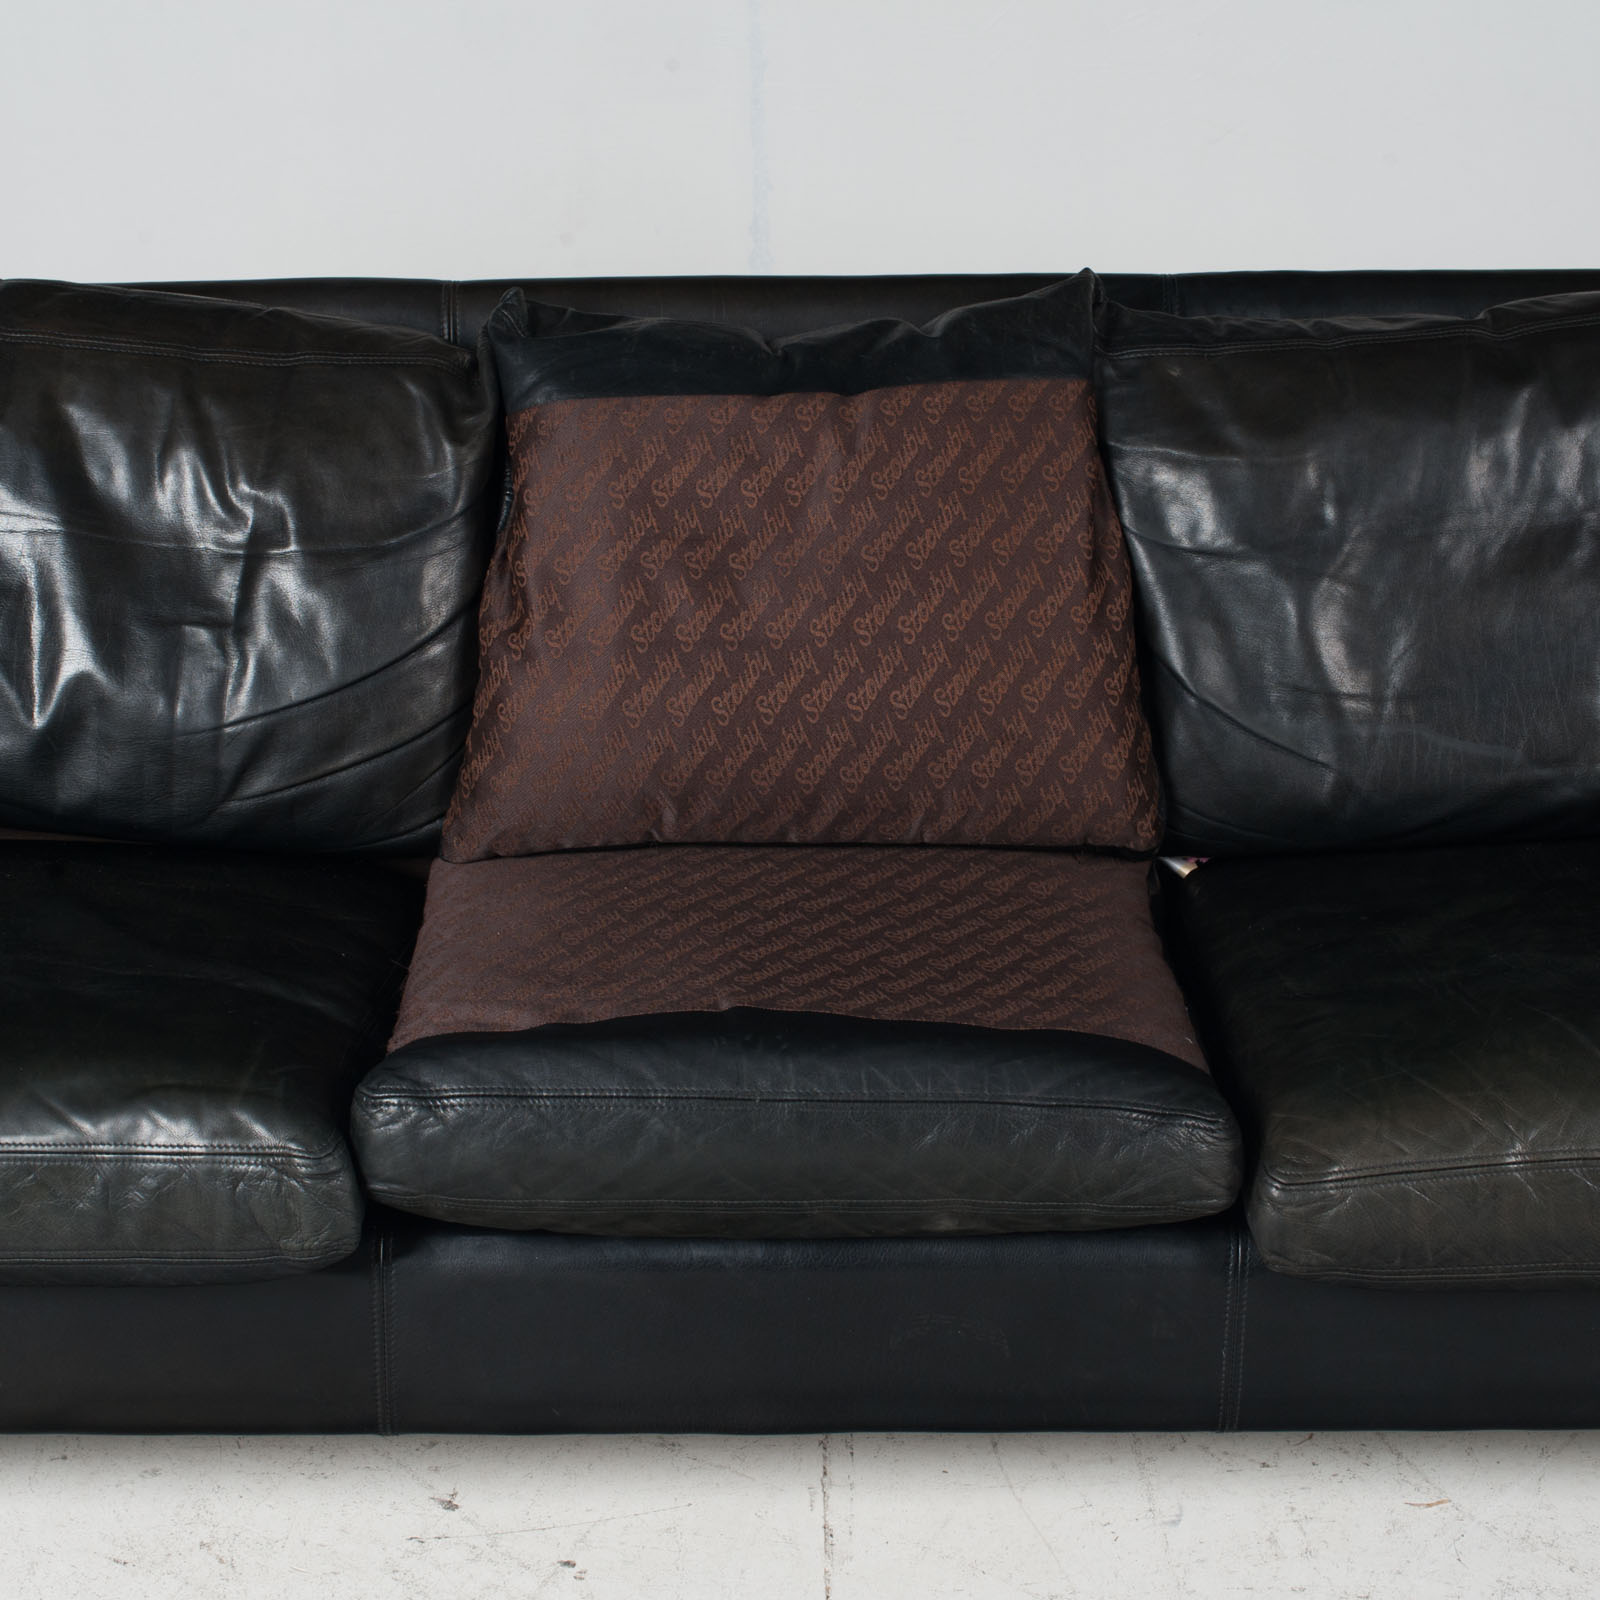 3 Seat Sofa By Stouby In Black Leather, 1960s, Denmark 1